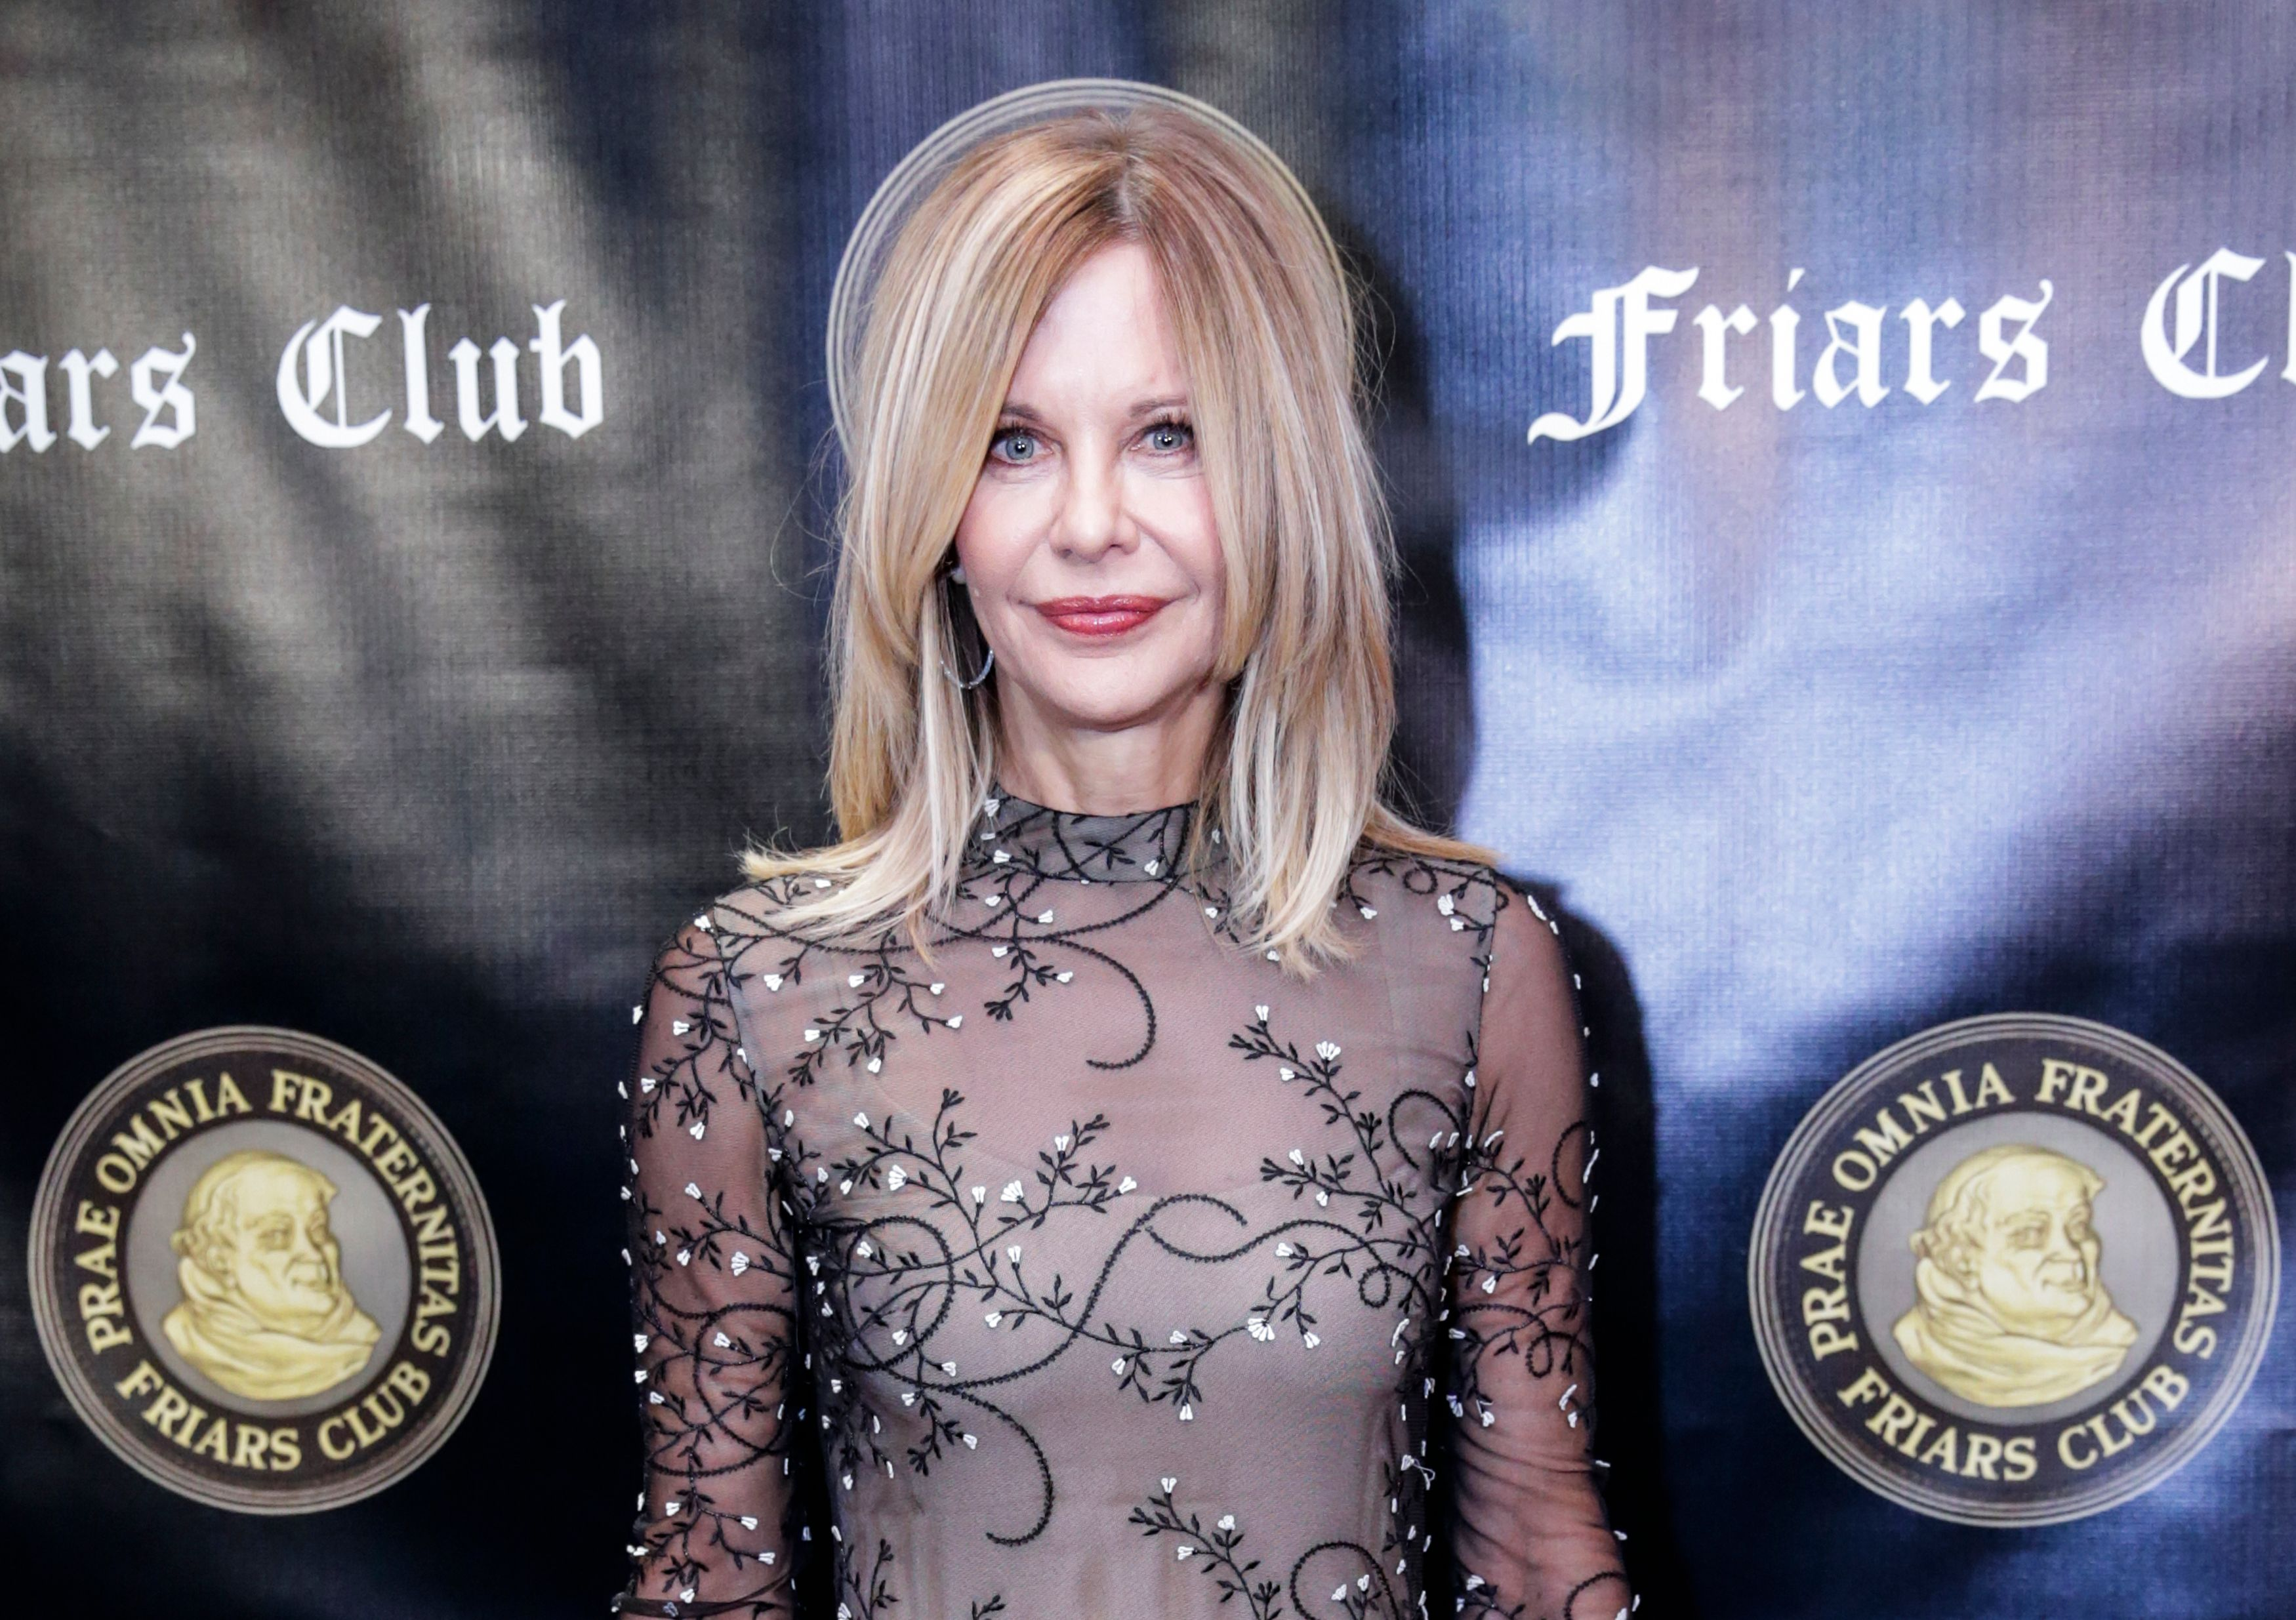 Meg Ryan Felt 'Exhausted' at the Height of Her Fame: 'Why Do We Want That?'